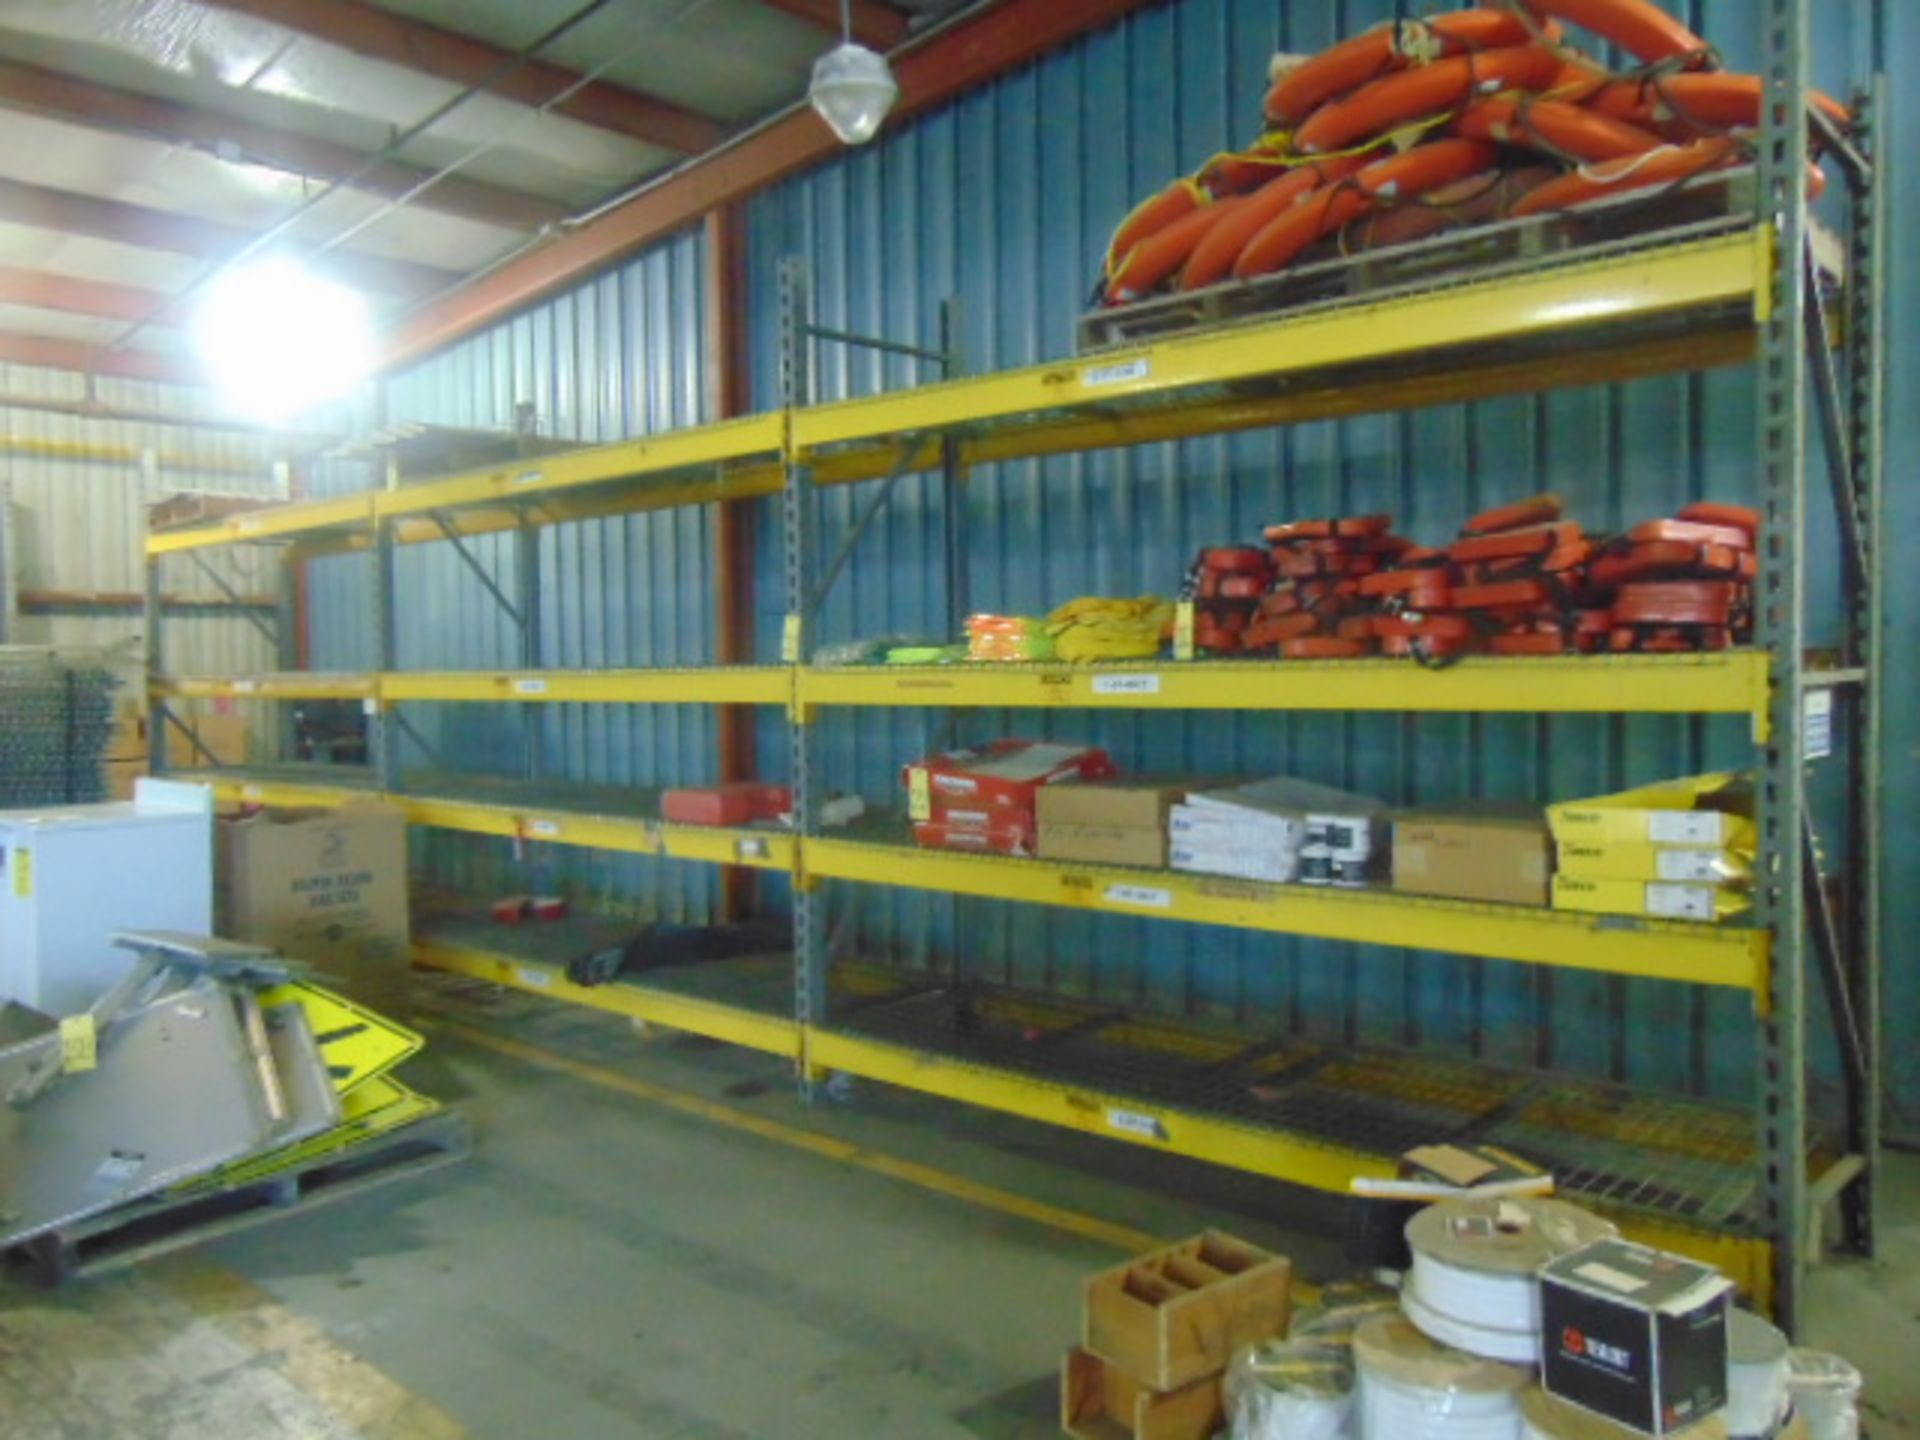 Lot 2327 - LOT OF PALLET RACKET SECTIONS (3), 10' T. x 10' W. x 3' dp. (cannot be removed until contents have